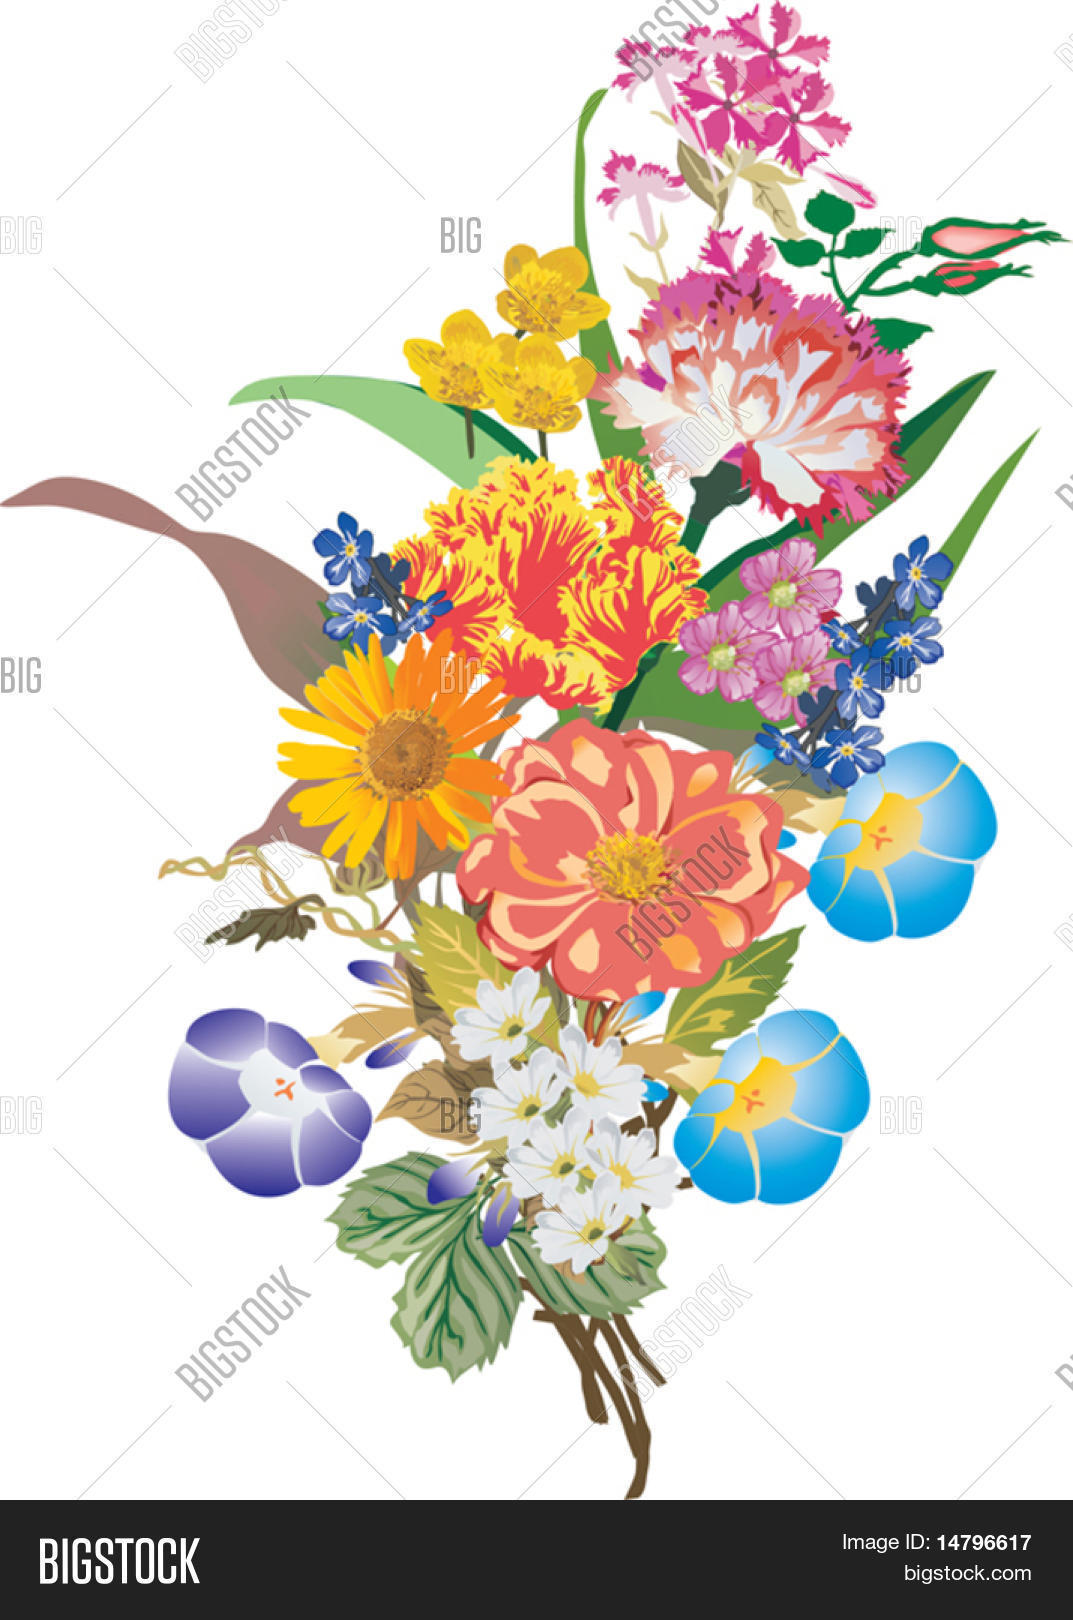 Illustration bunch vector photo free trial bigstock illustration with bunch of different flowers isolated on white background izmirmasajfo